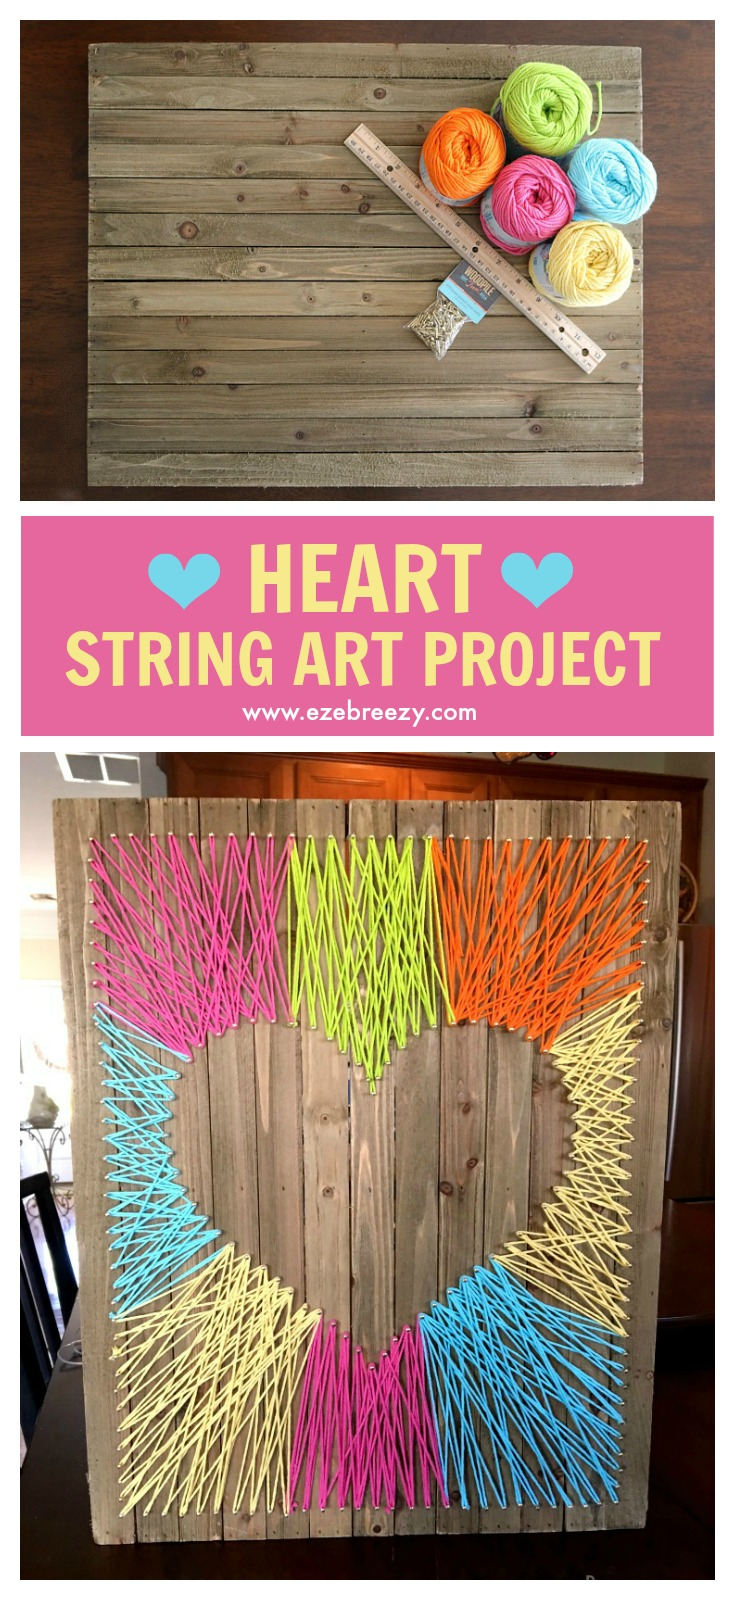 Easy, Fun and Colorful Heart String Art Craft that adds the perfect pop of color to any wall. | EZEBREEZY.COM | String Art Craft | String Craft | String Art Craft for Kids | String Art Activity | Craft for Kids | String Art Project